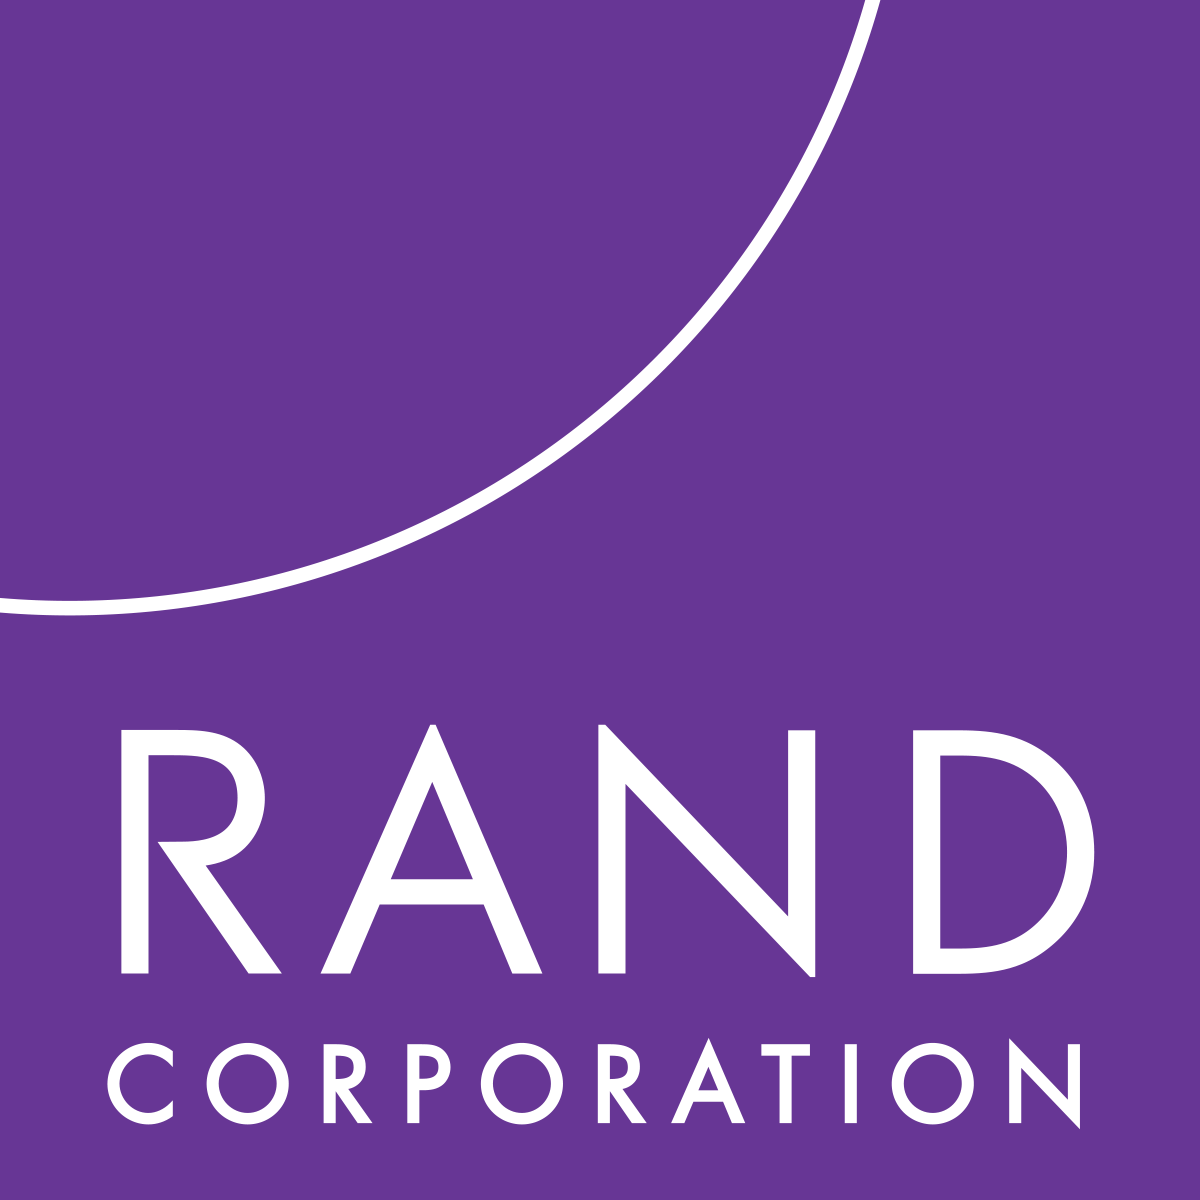 Rand Corporation Provides Objective Research Services And Public